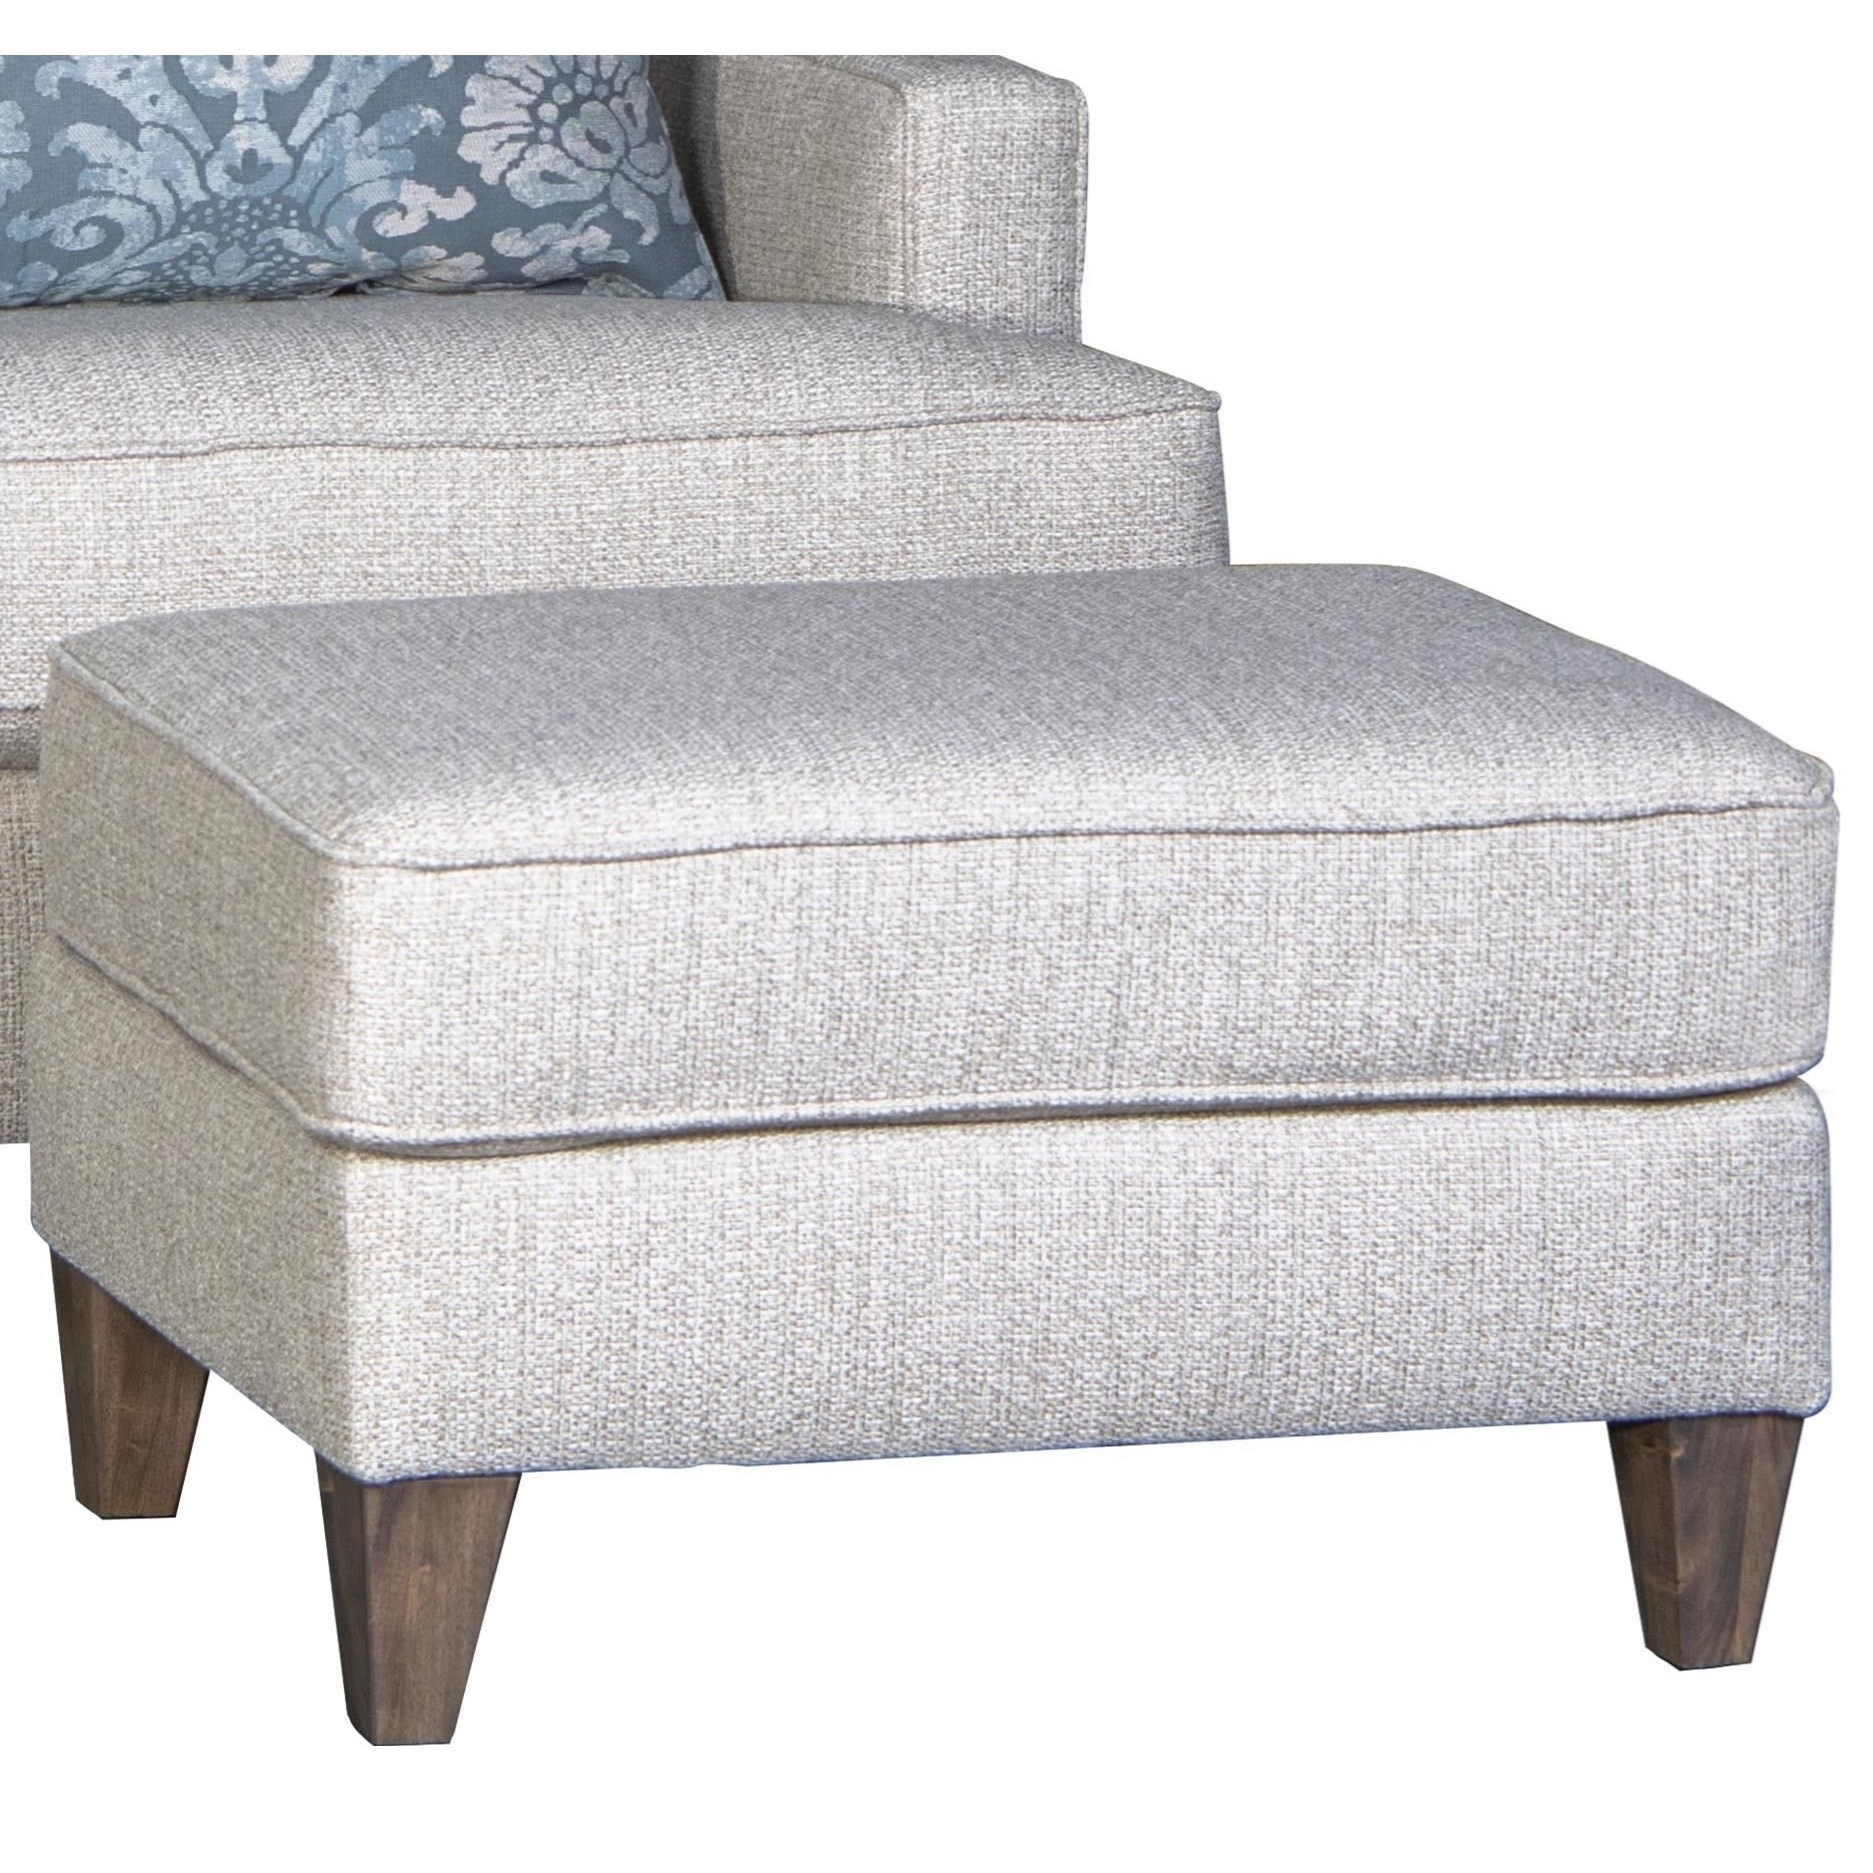 3030 Ottoman by Mayo at Story & Lee Furniture